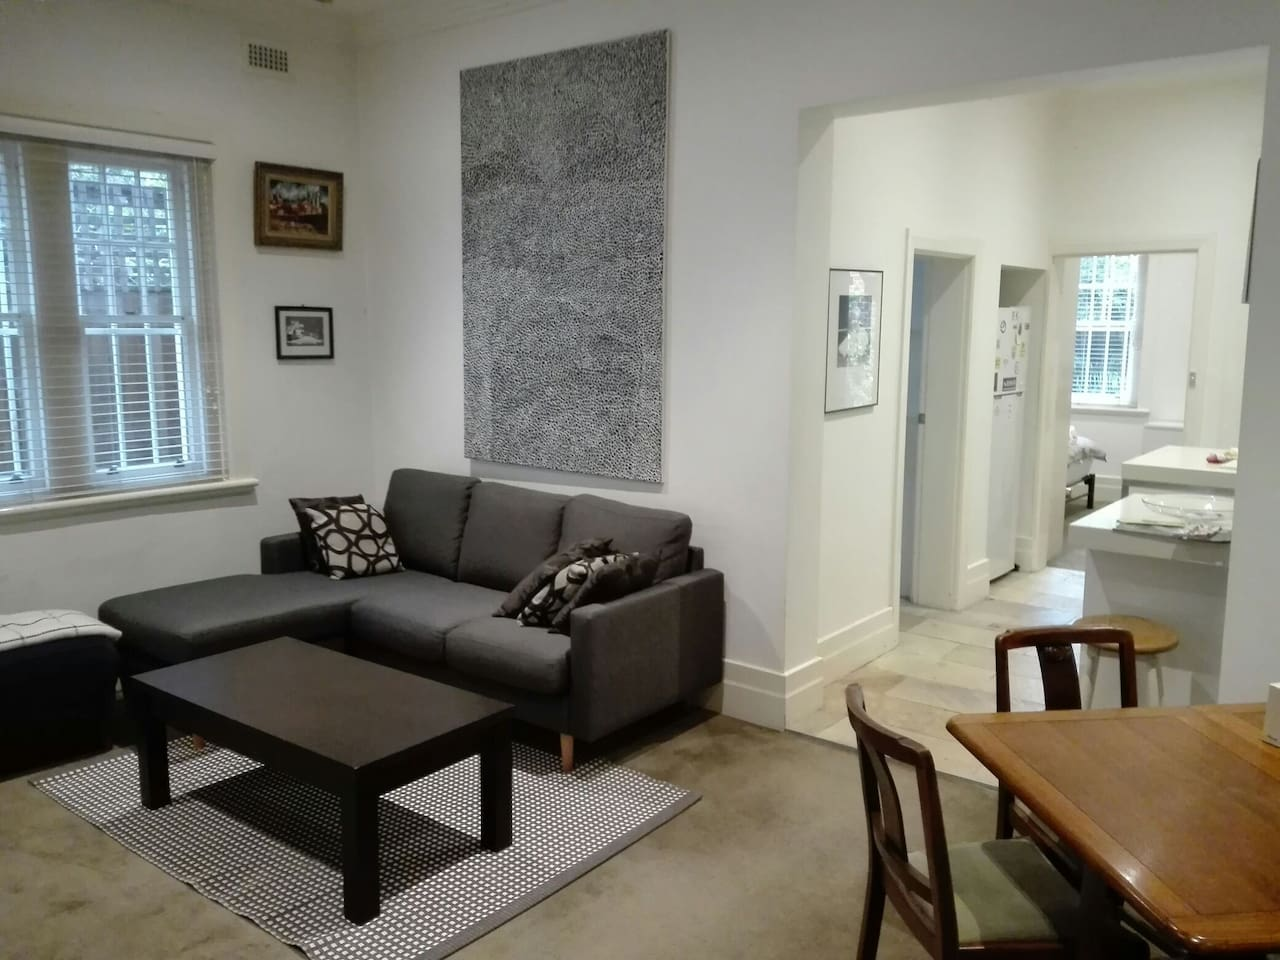 Spacious 70 m2 apartment with an open floor plan living area, two bedrooms, one with attached sunroom and a communal garden